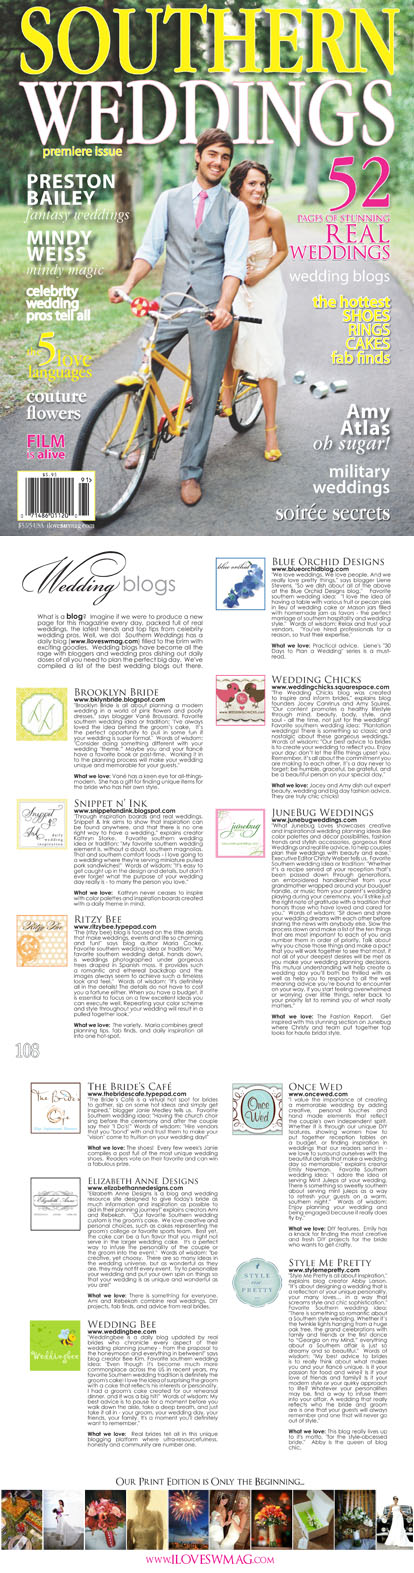 Southern Weddings Magazine wedding blogs feature on What Junebug Loves